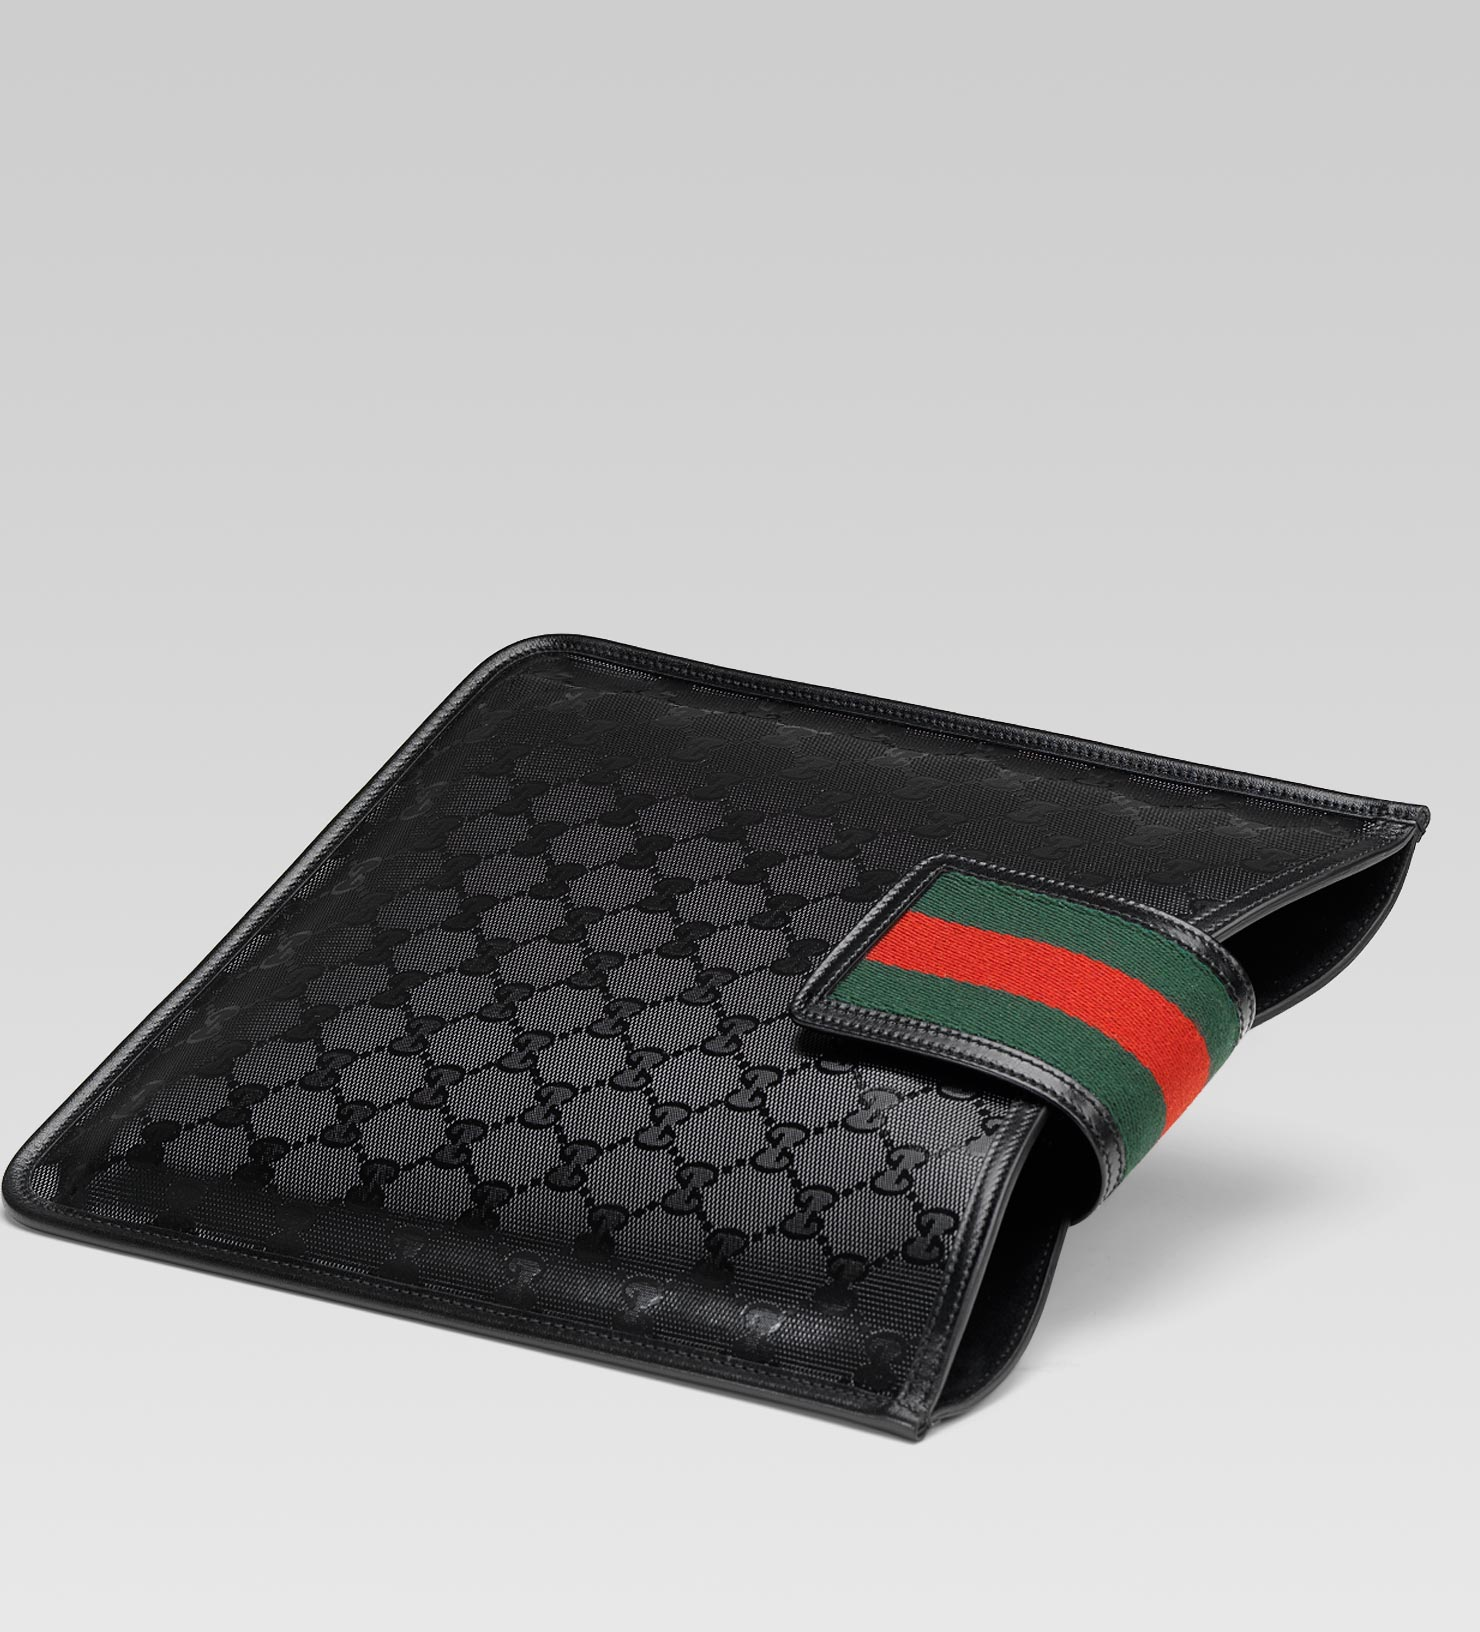 The Gucci Case for iPad